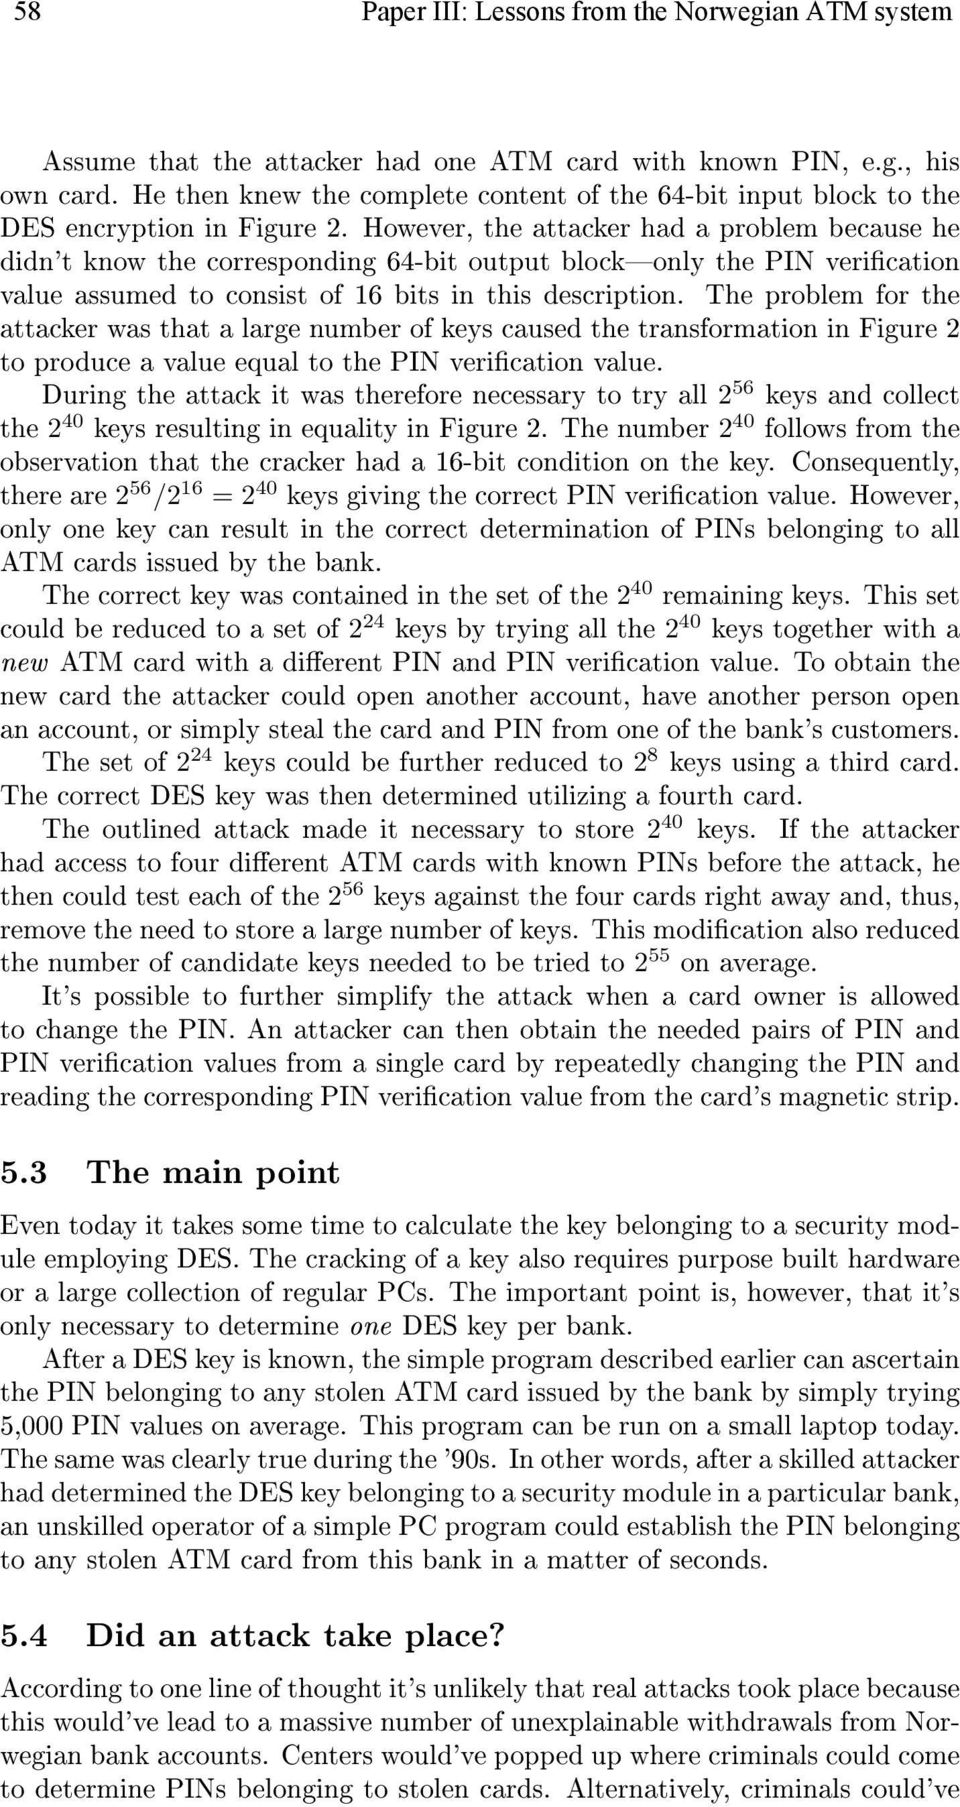 However, the attacker had a problem because he didn't know the corresponding 64-bit output blockonly the PIN verication value assumed to consist of 16 bits in this description.